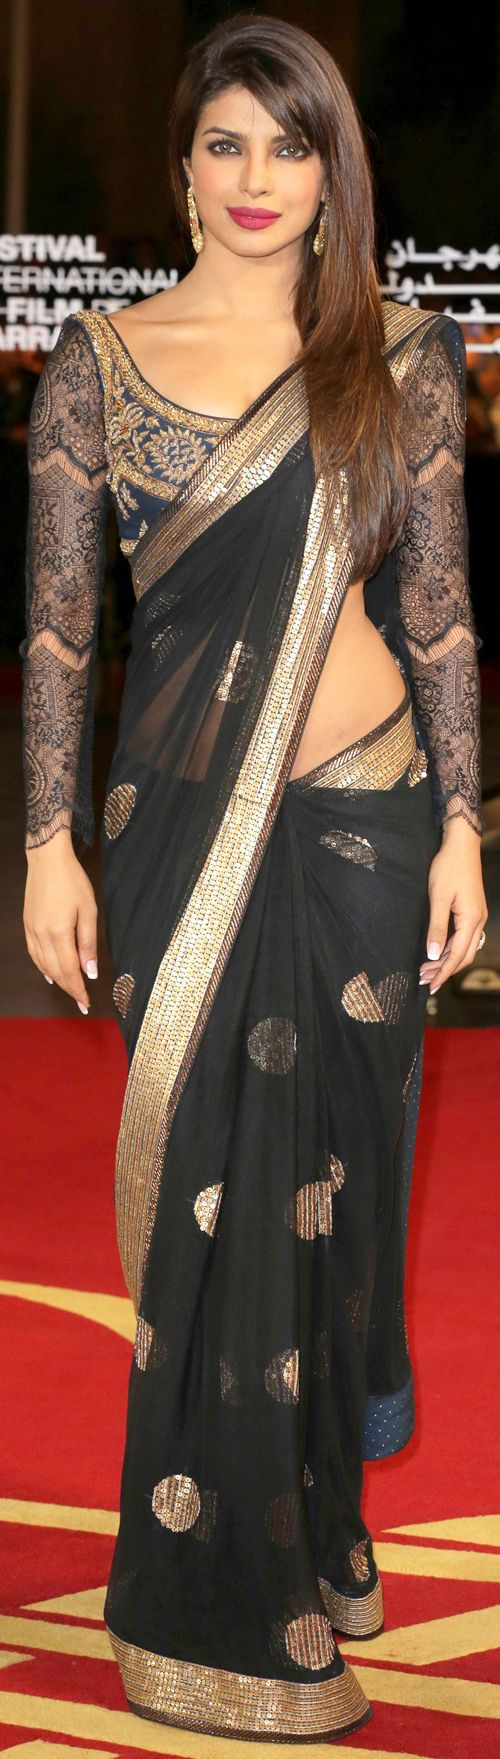 Top 34 Bollywood Actresses Who Look Beautiful In Saree